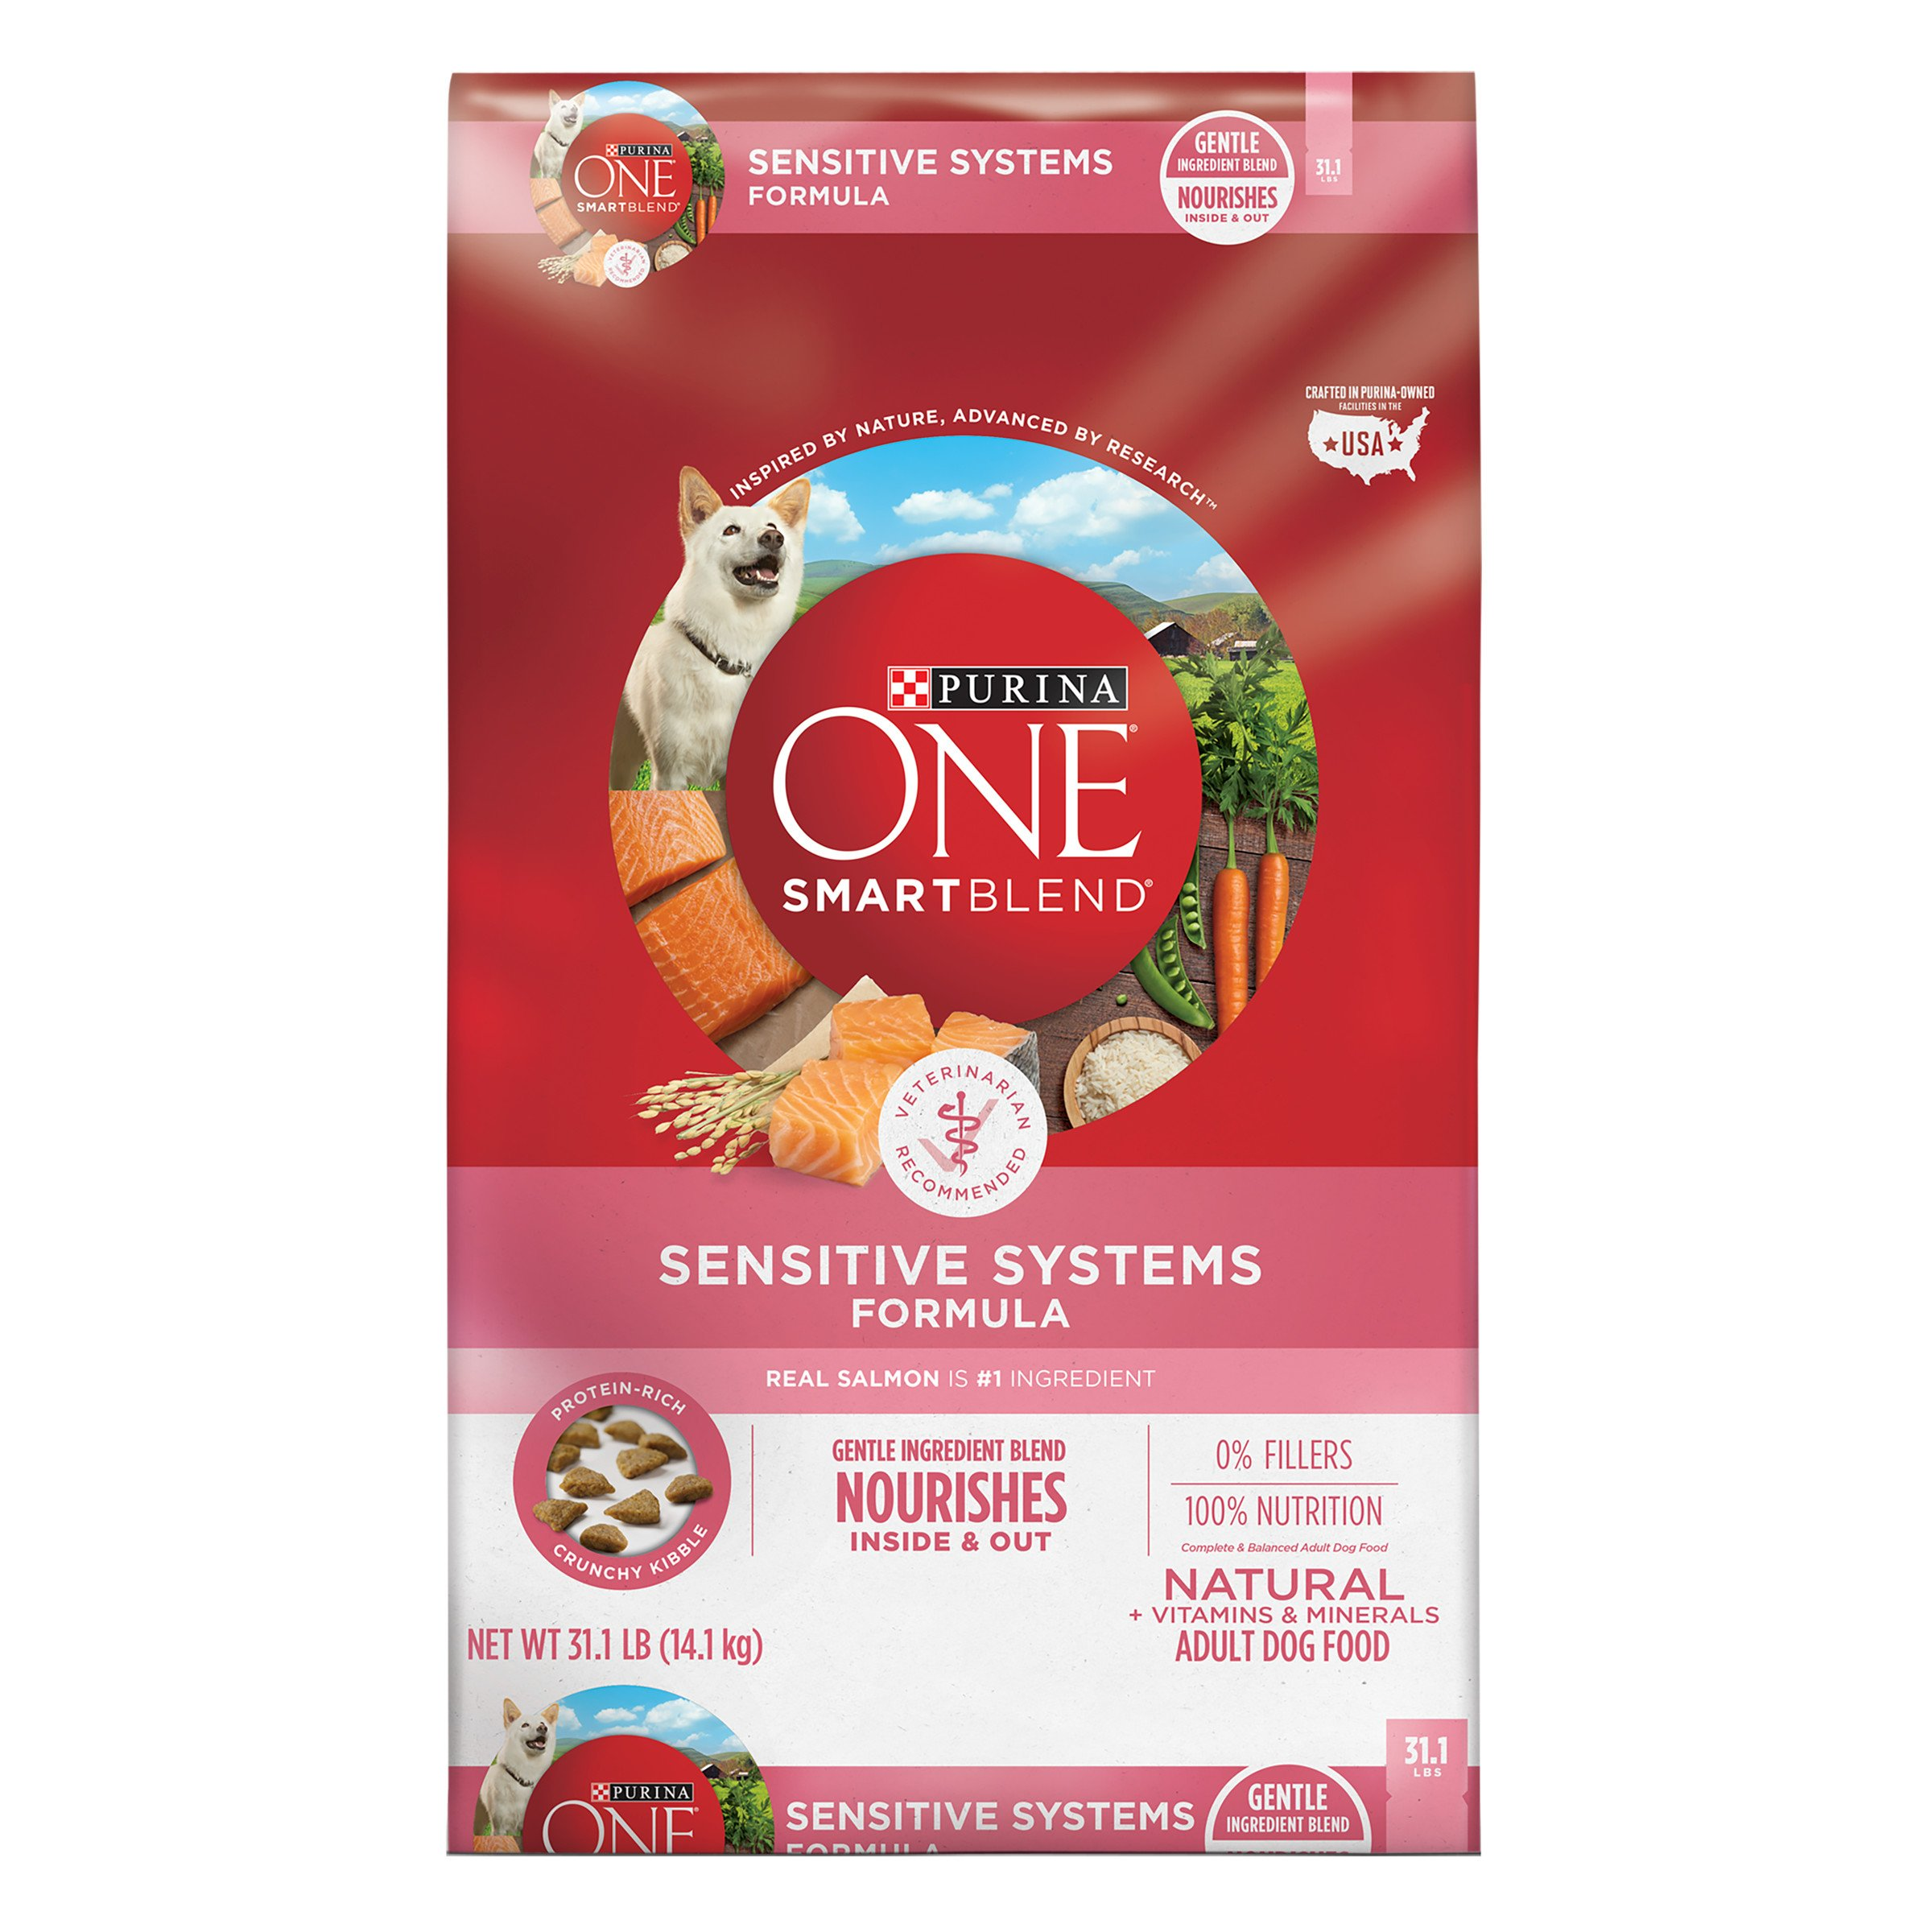 Purina ONE SmartBlend Natural Sensitive Systems Formula Adult Dry Dog Food - 31.1 lb. Bag by Purina ONE